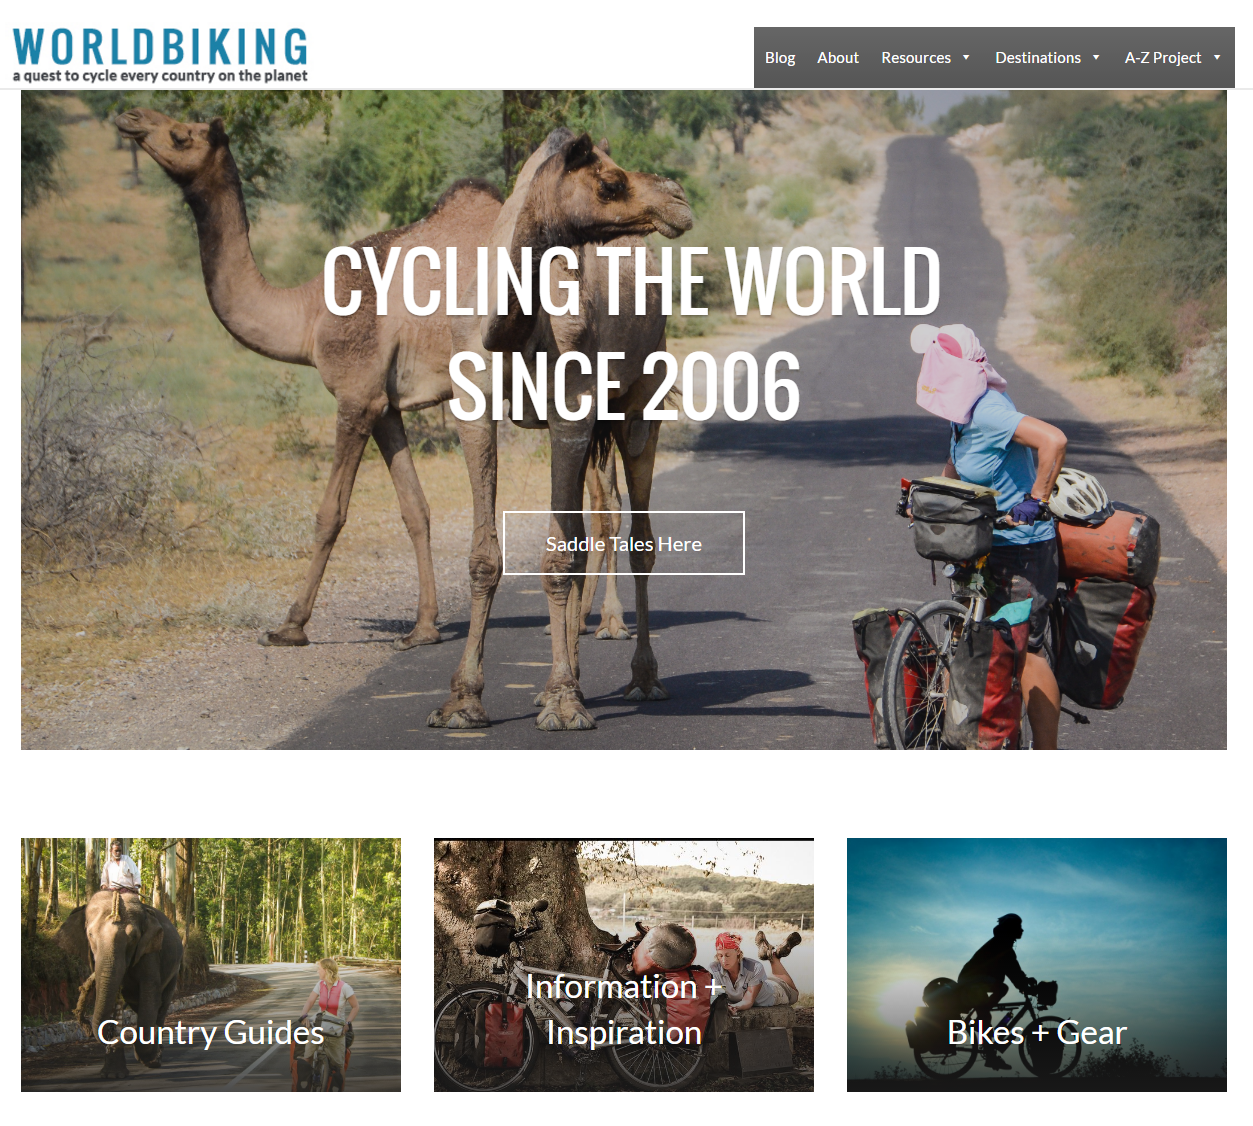 word biking website